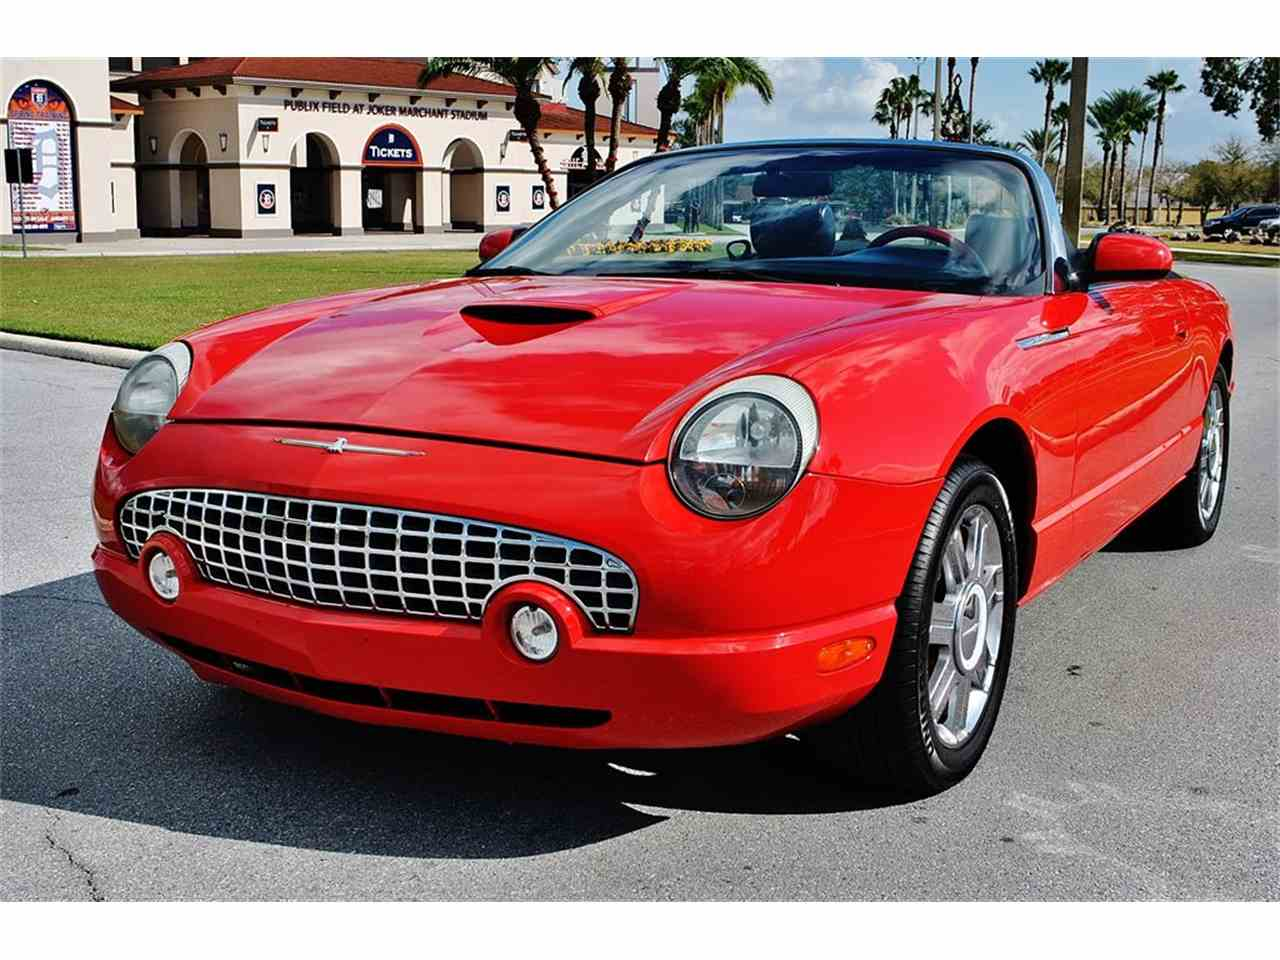 2005 ford thunderbird for sale classiccars cc 1054291 large picture of 05 thunderbird mlhv sciox Image collections